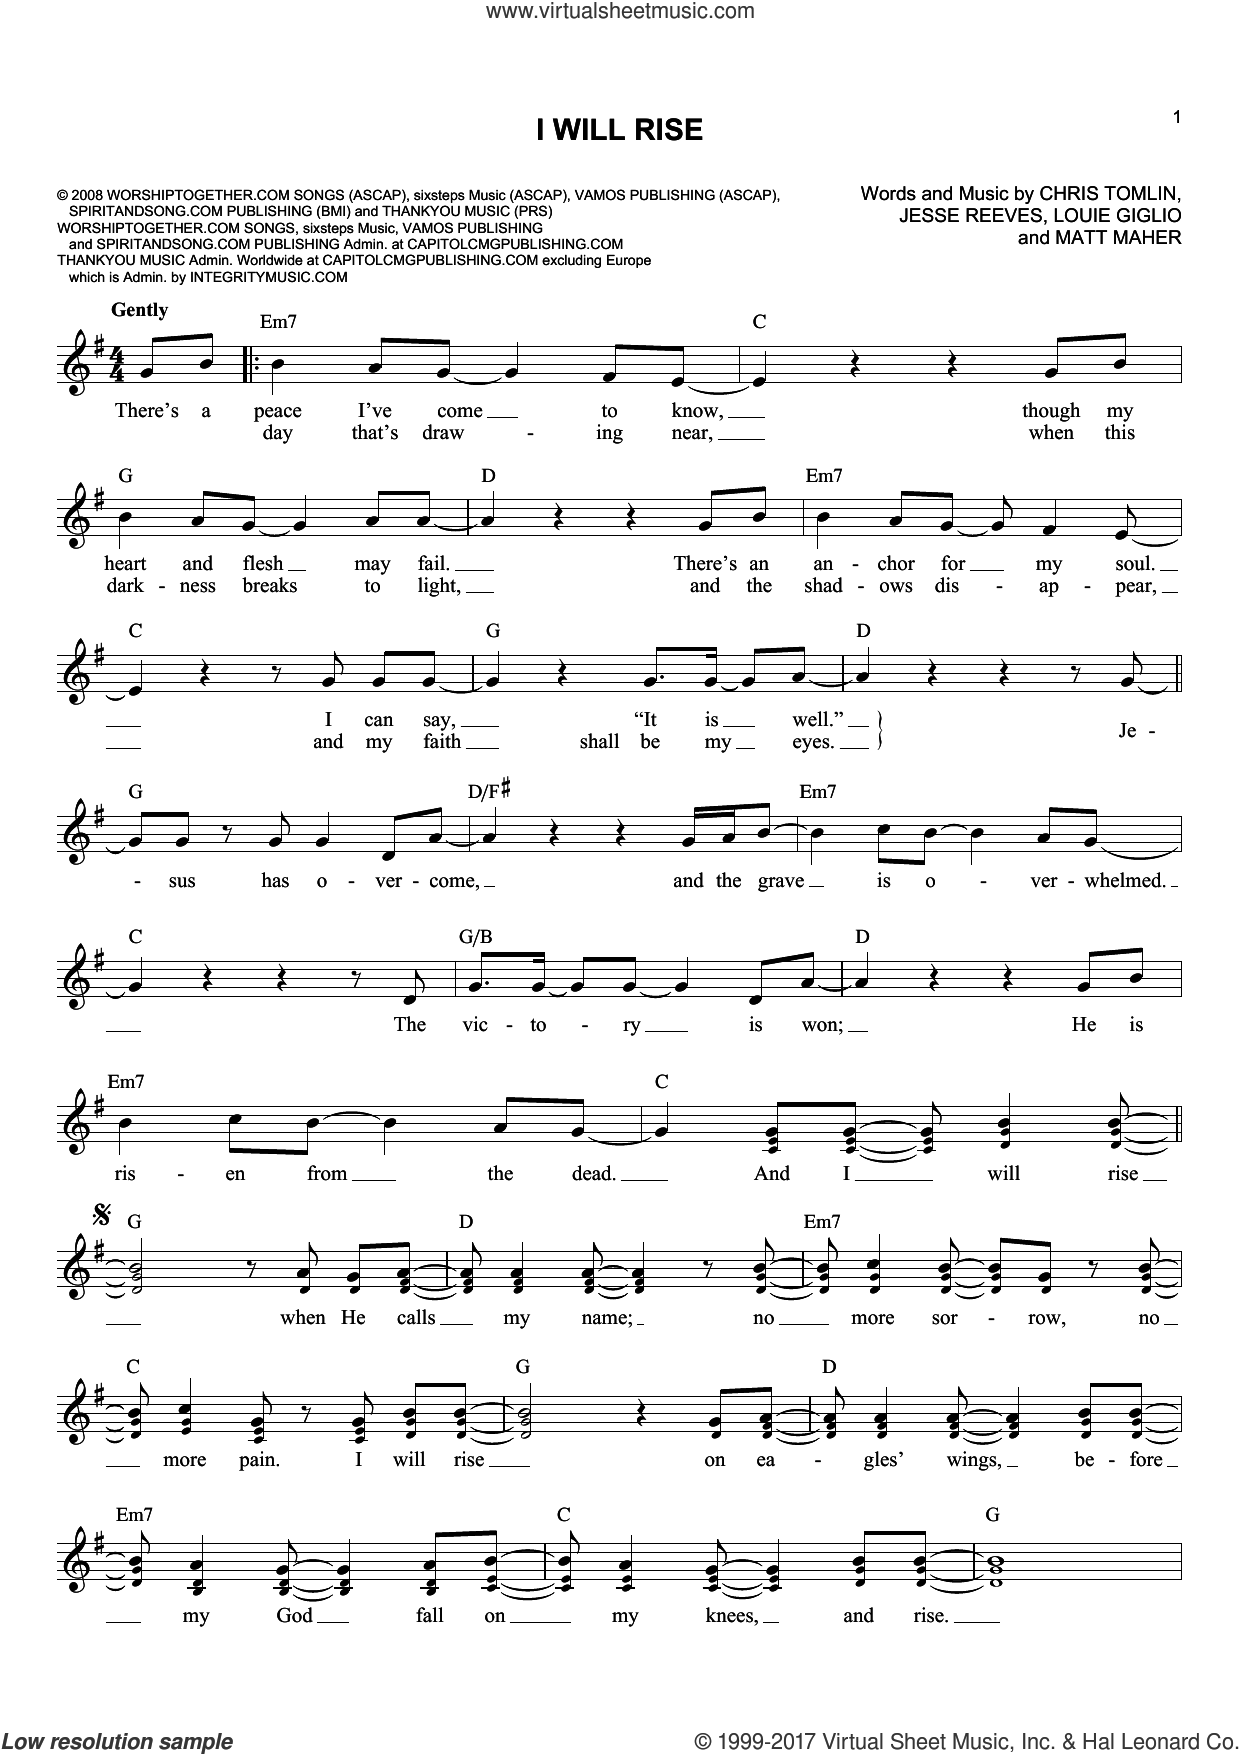 I Will Rise sheet music for voice and other instruments (fake book) by Matt Maher, Chris Tomlin and Jesse Reeves. Score Image Preview.